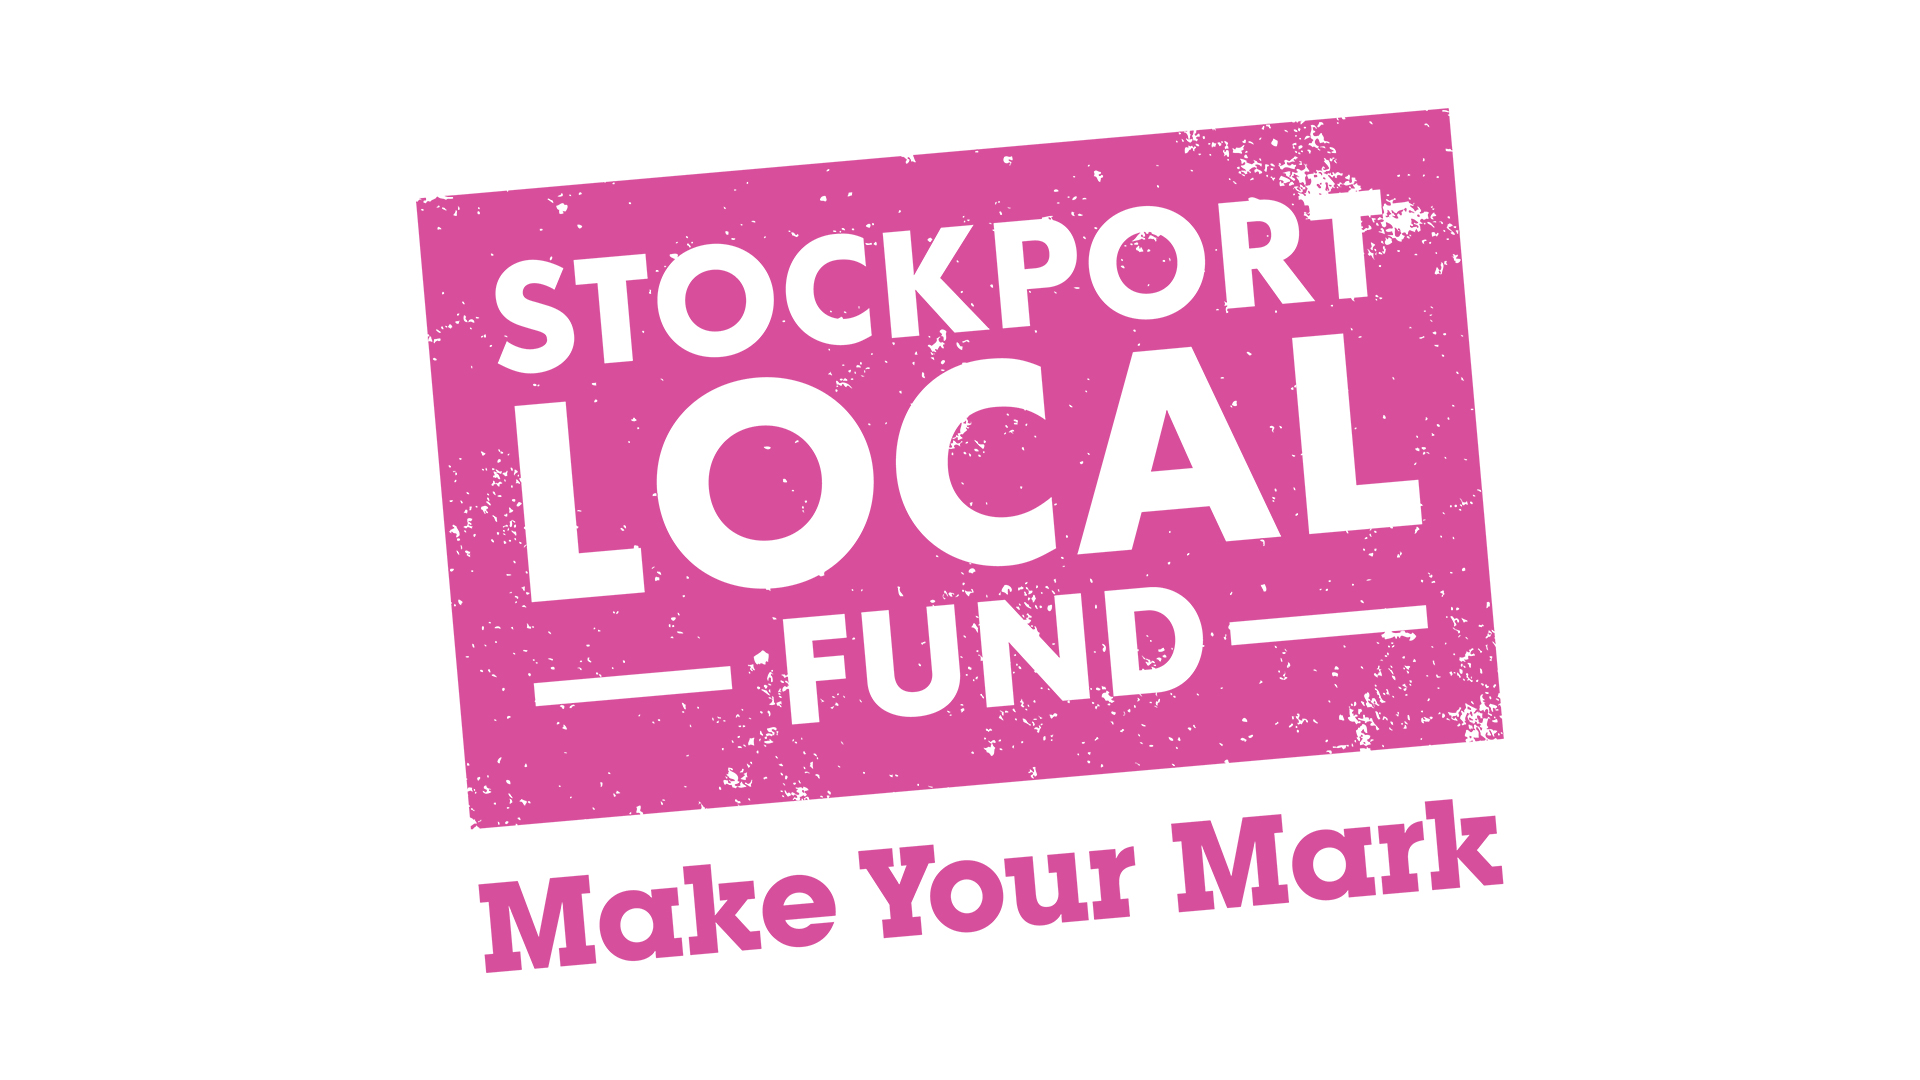 Thank you to everyone who applied to Stockport Local Fund